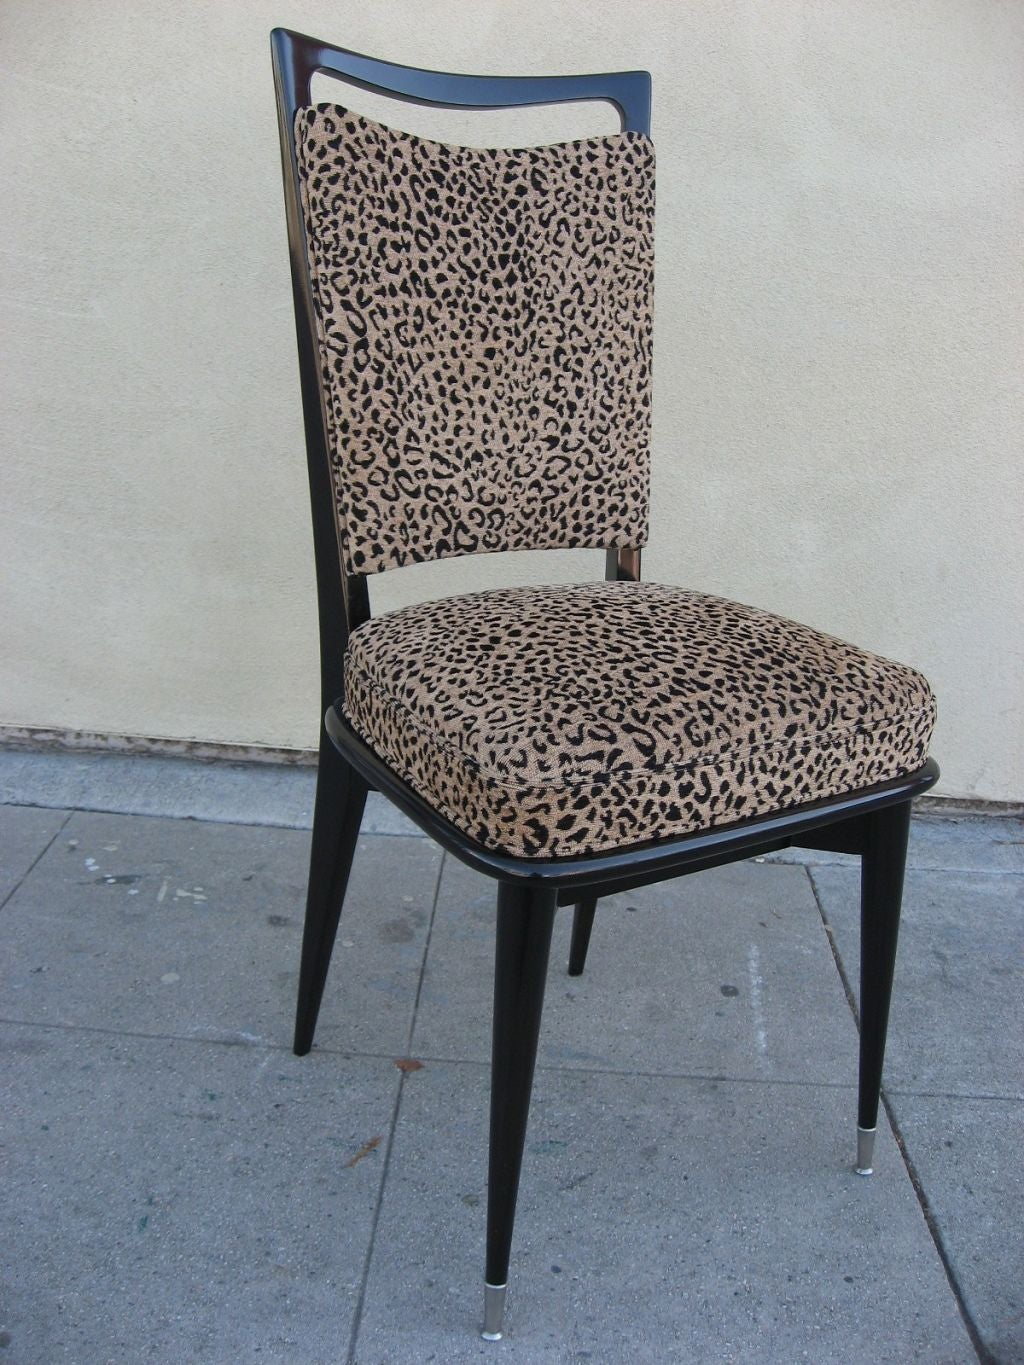 Cheetah Chair Set Of 6 French 50 39s Leopard Print Chairs At 1stdibs